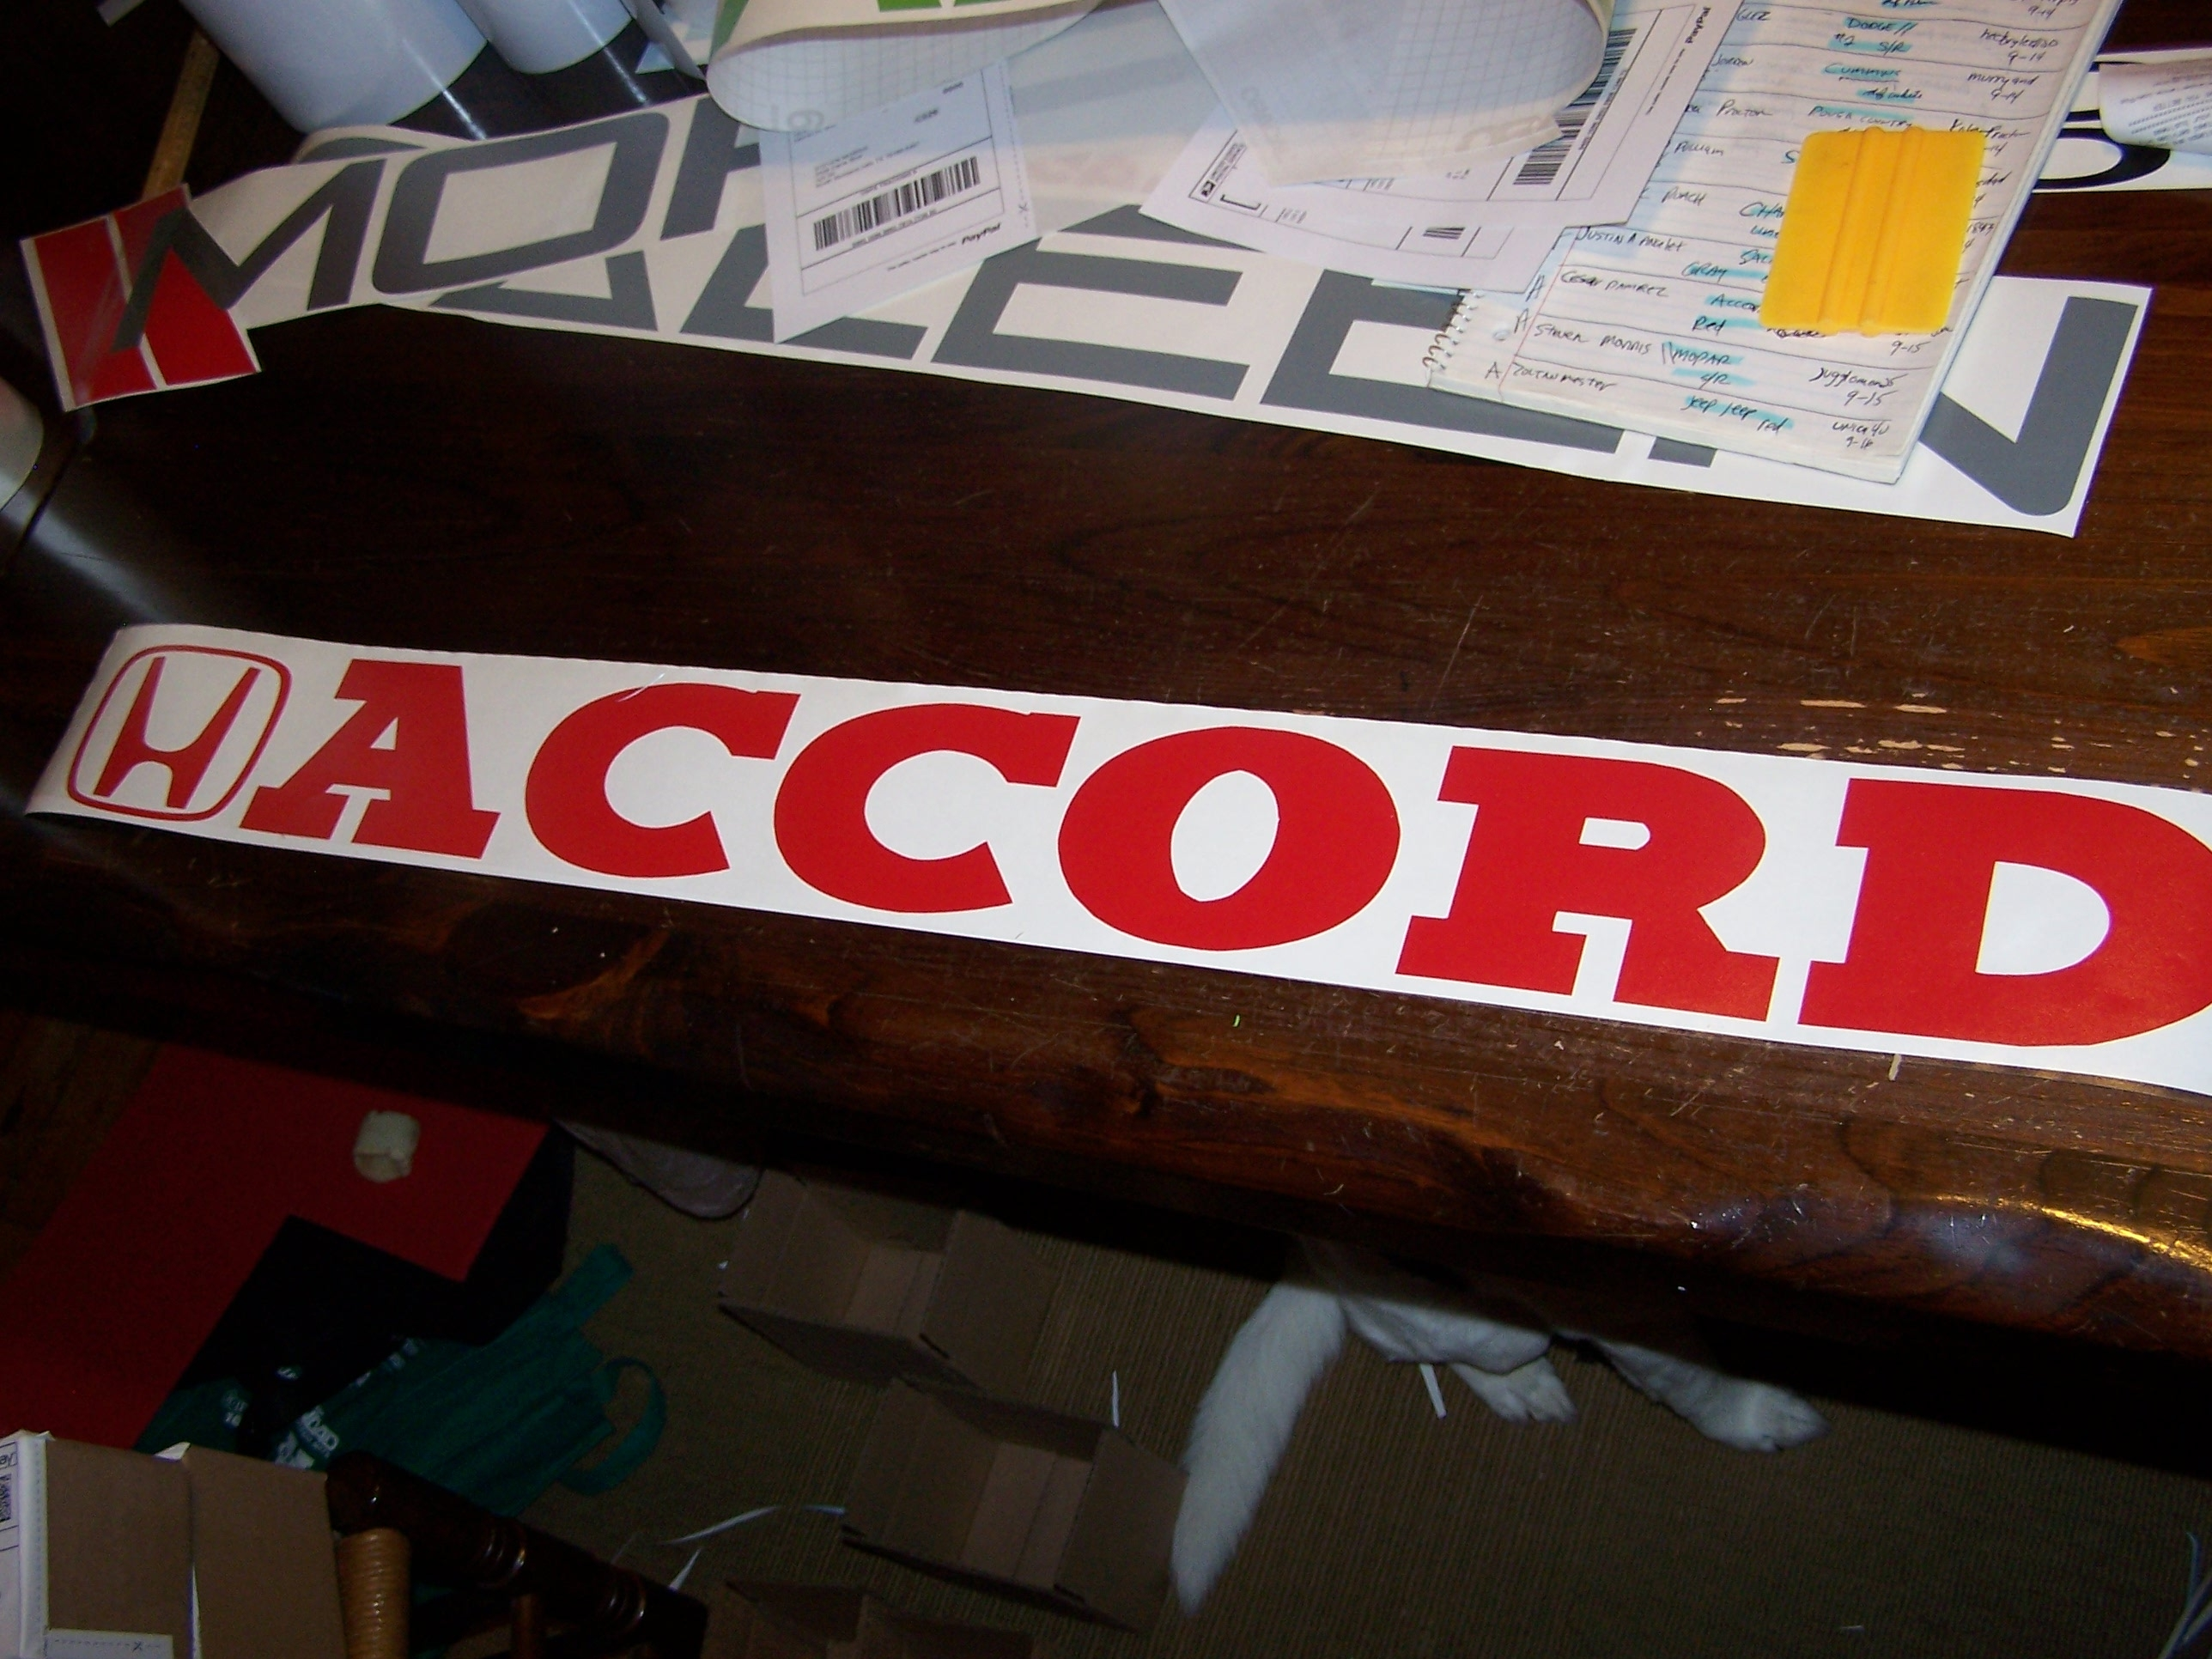 ACCORD WINDSHIELD DECAL BANER VINYL STICKER - Honda accord decals stickers